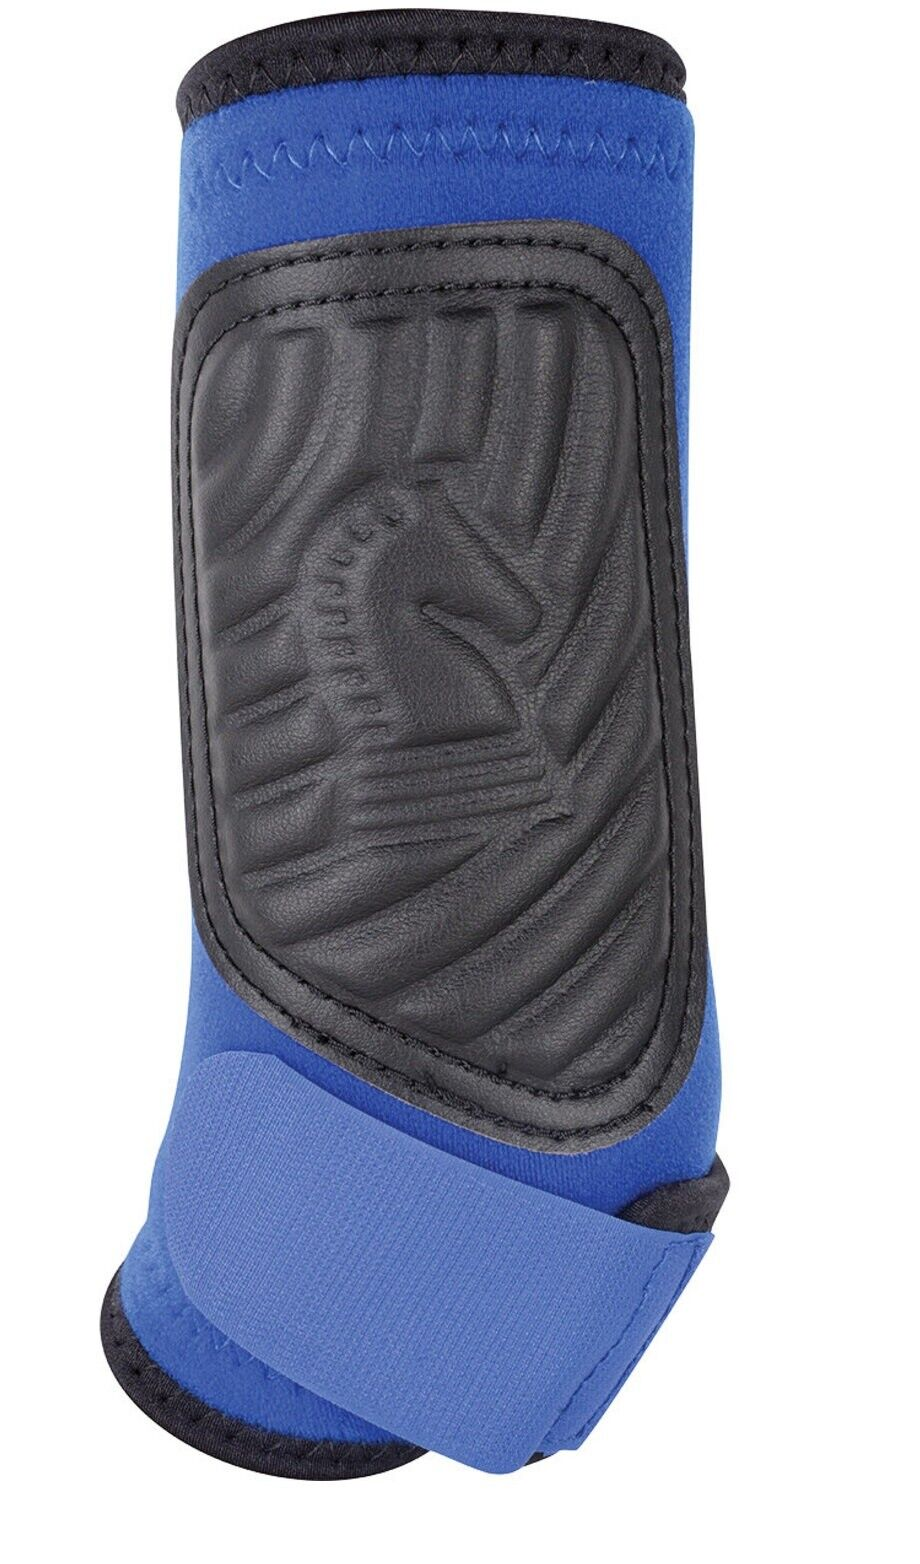 ClassicFit Boots Hind For Horses Leg Protection Support Medium Size Blue